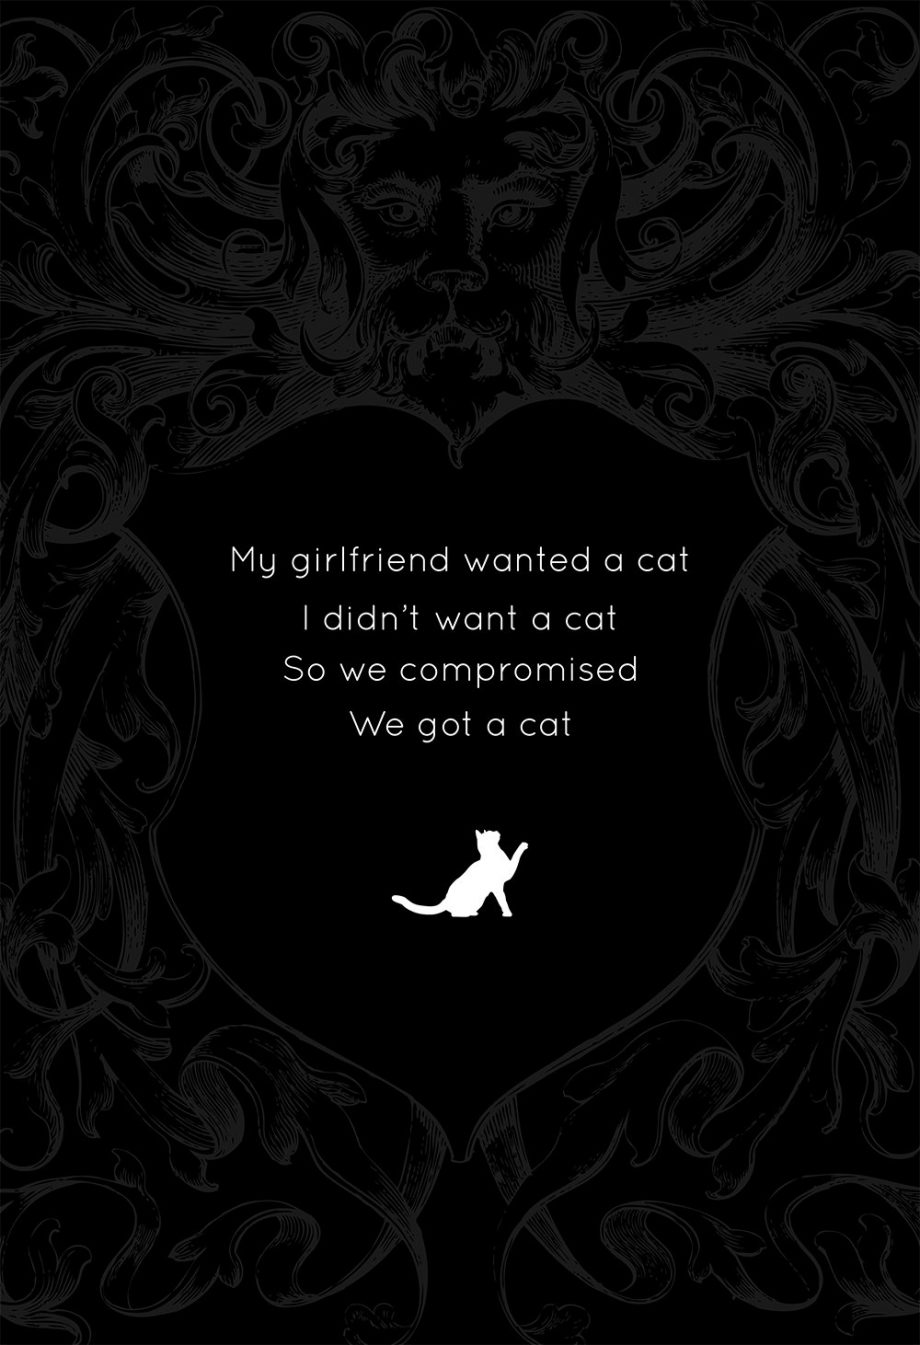 My Girlfriend Wanted A Cat... Original Illustration Vintage Style Giclee Funny Print Large Poster on Satin or Cotton Canvas Humor Wall Decor